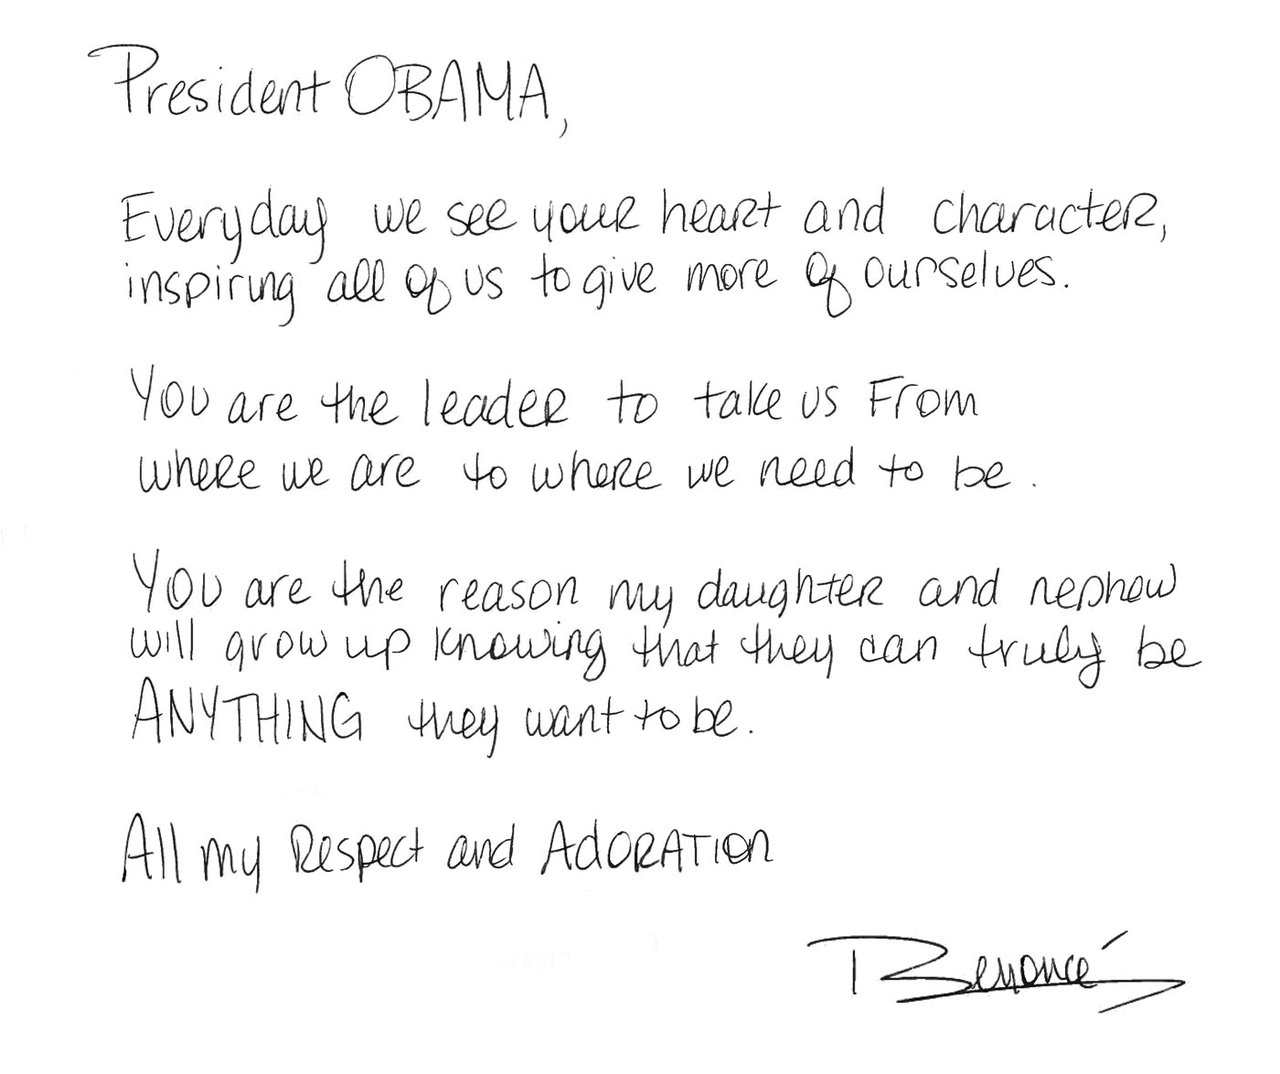 How To Write A Letter To President Obama Mersnoforum